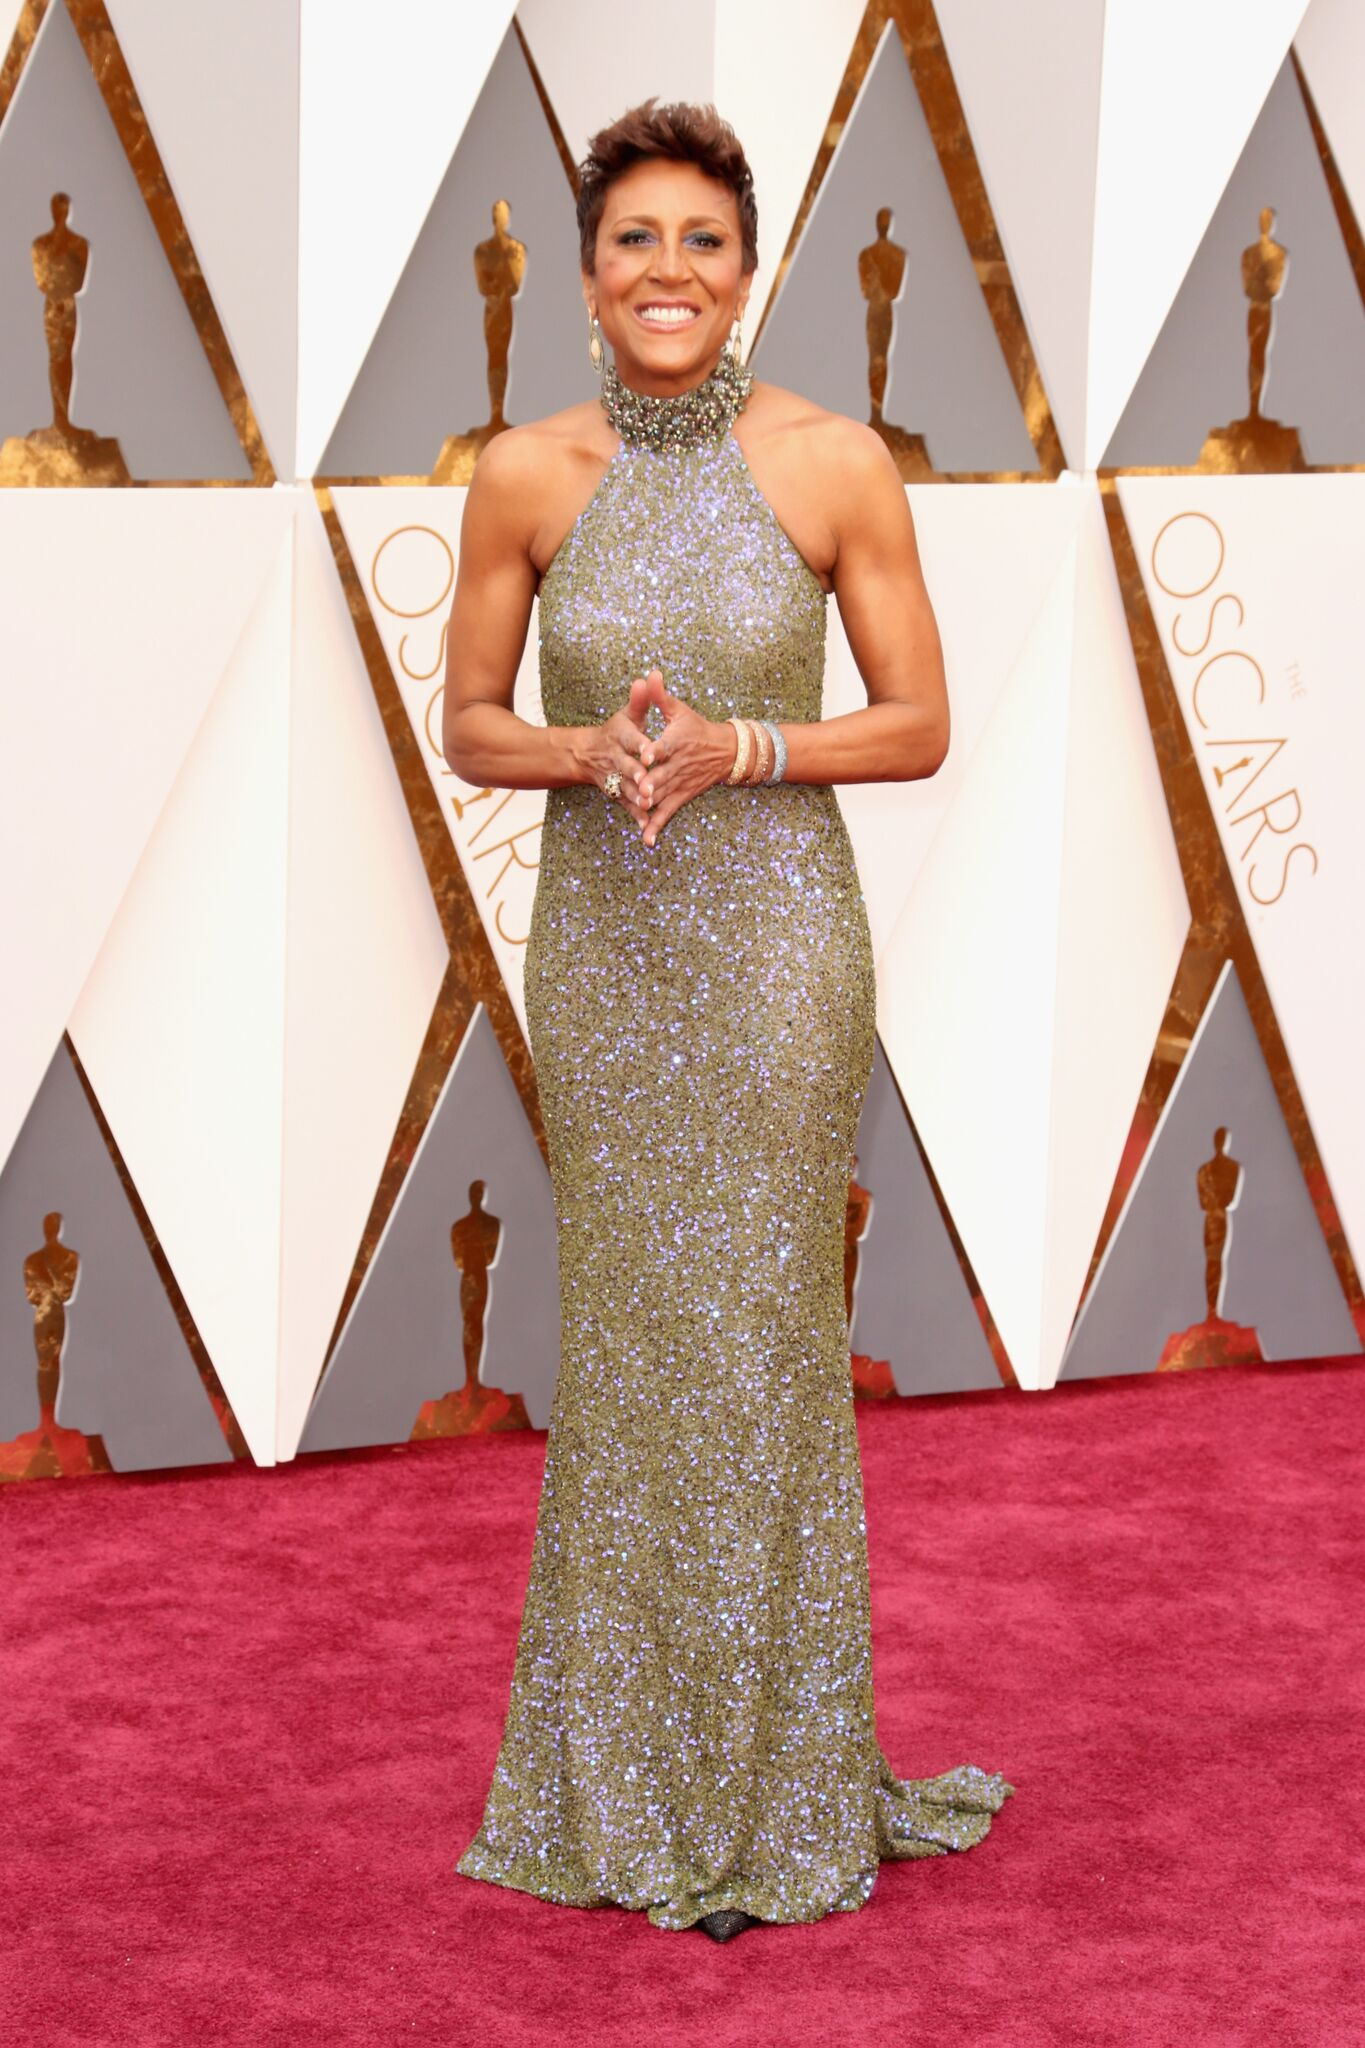 Robin Roberts attends the 88th Annual Academy Awards at Hollywood & Highland Center | Getty Images